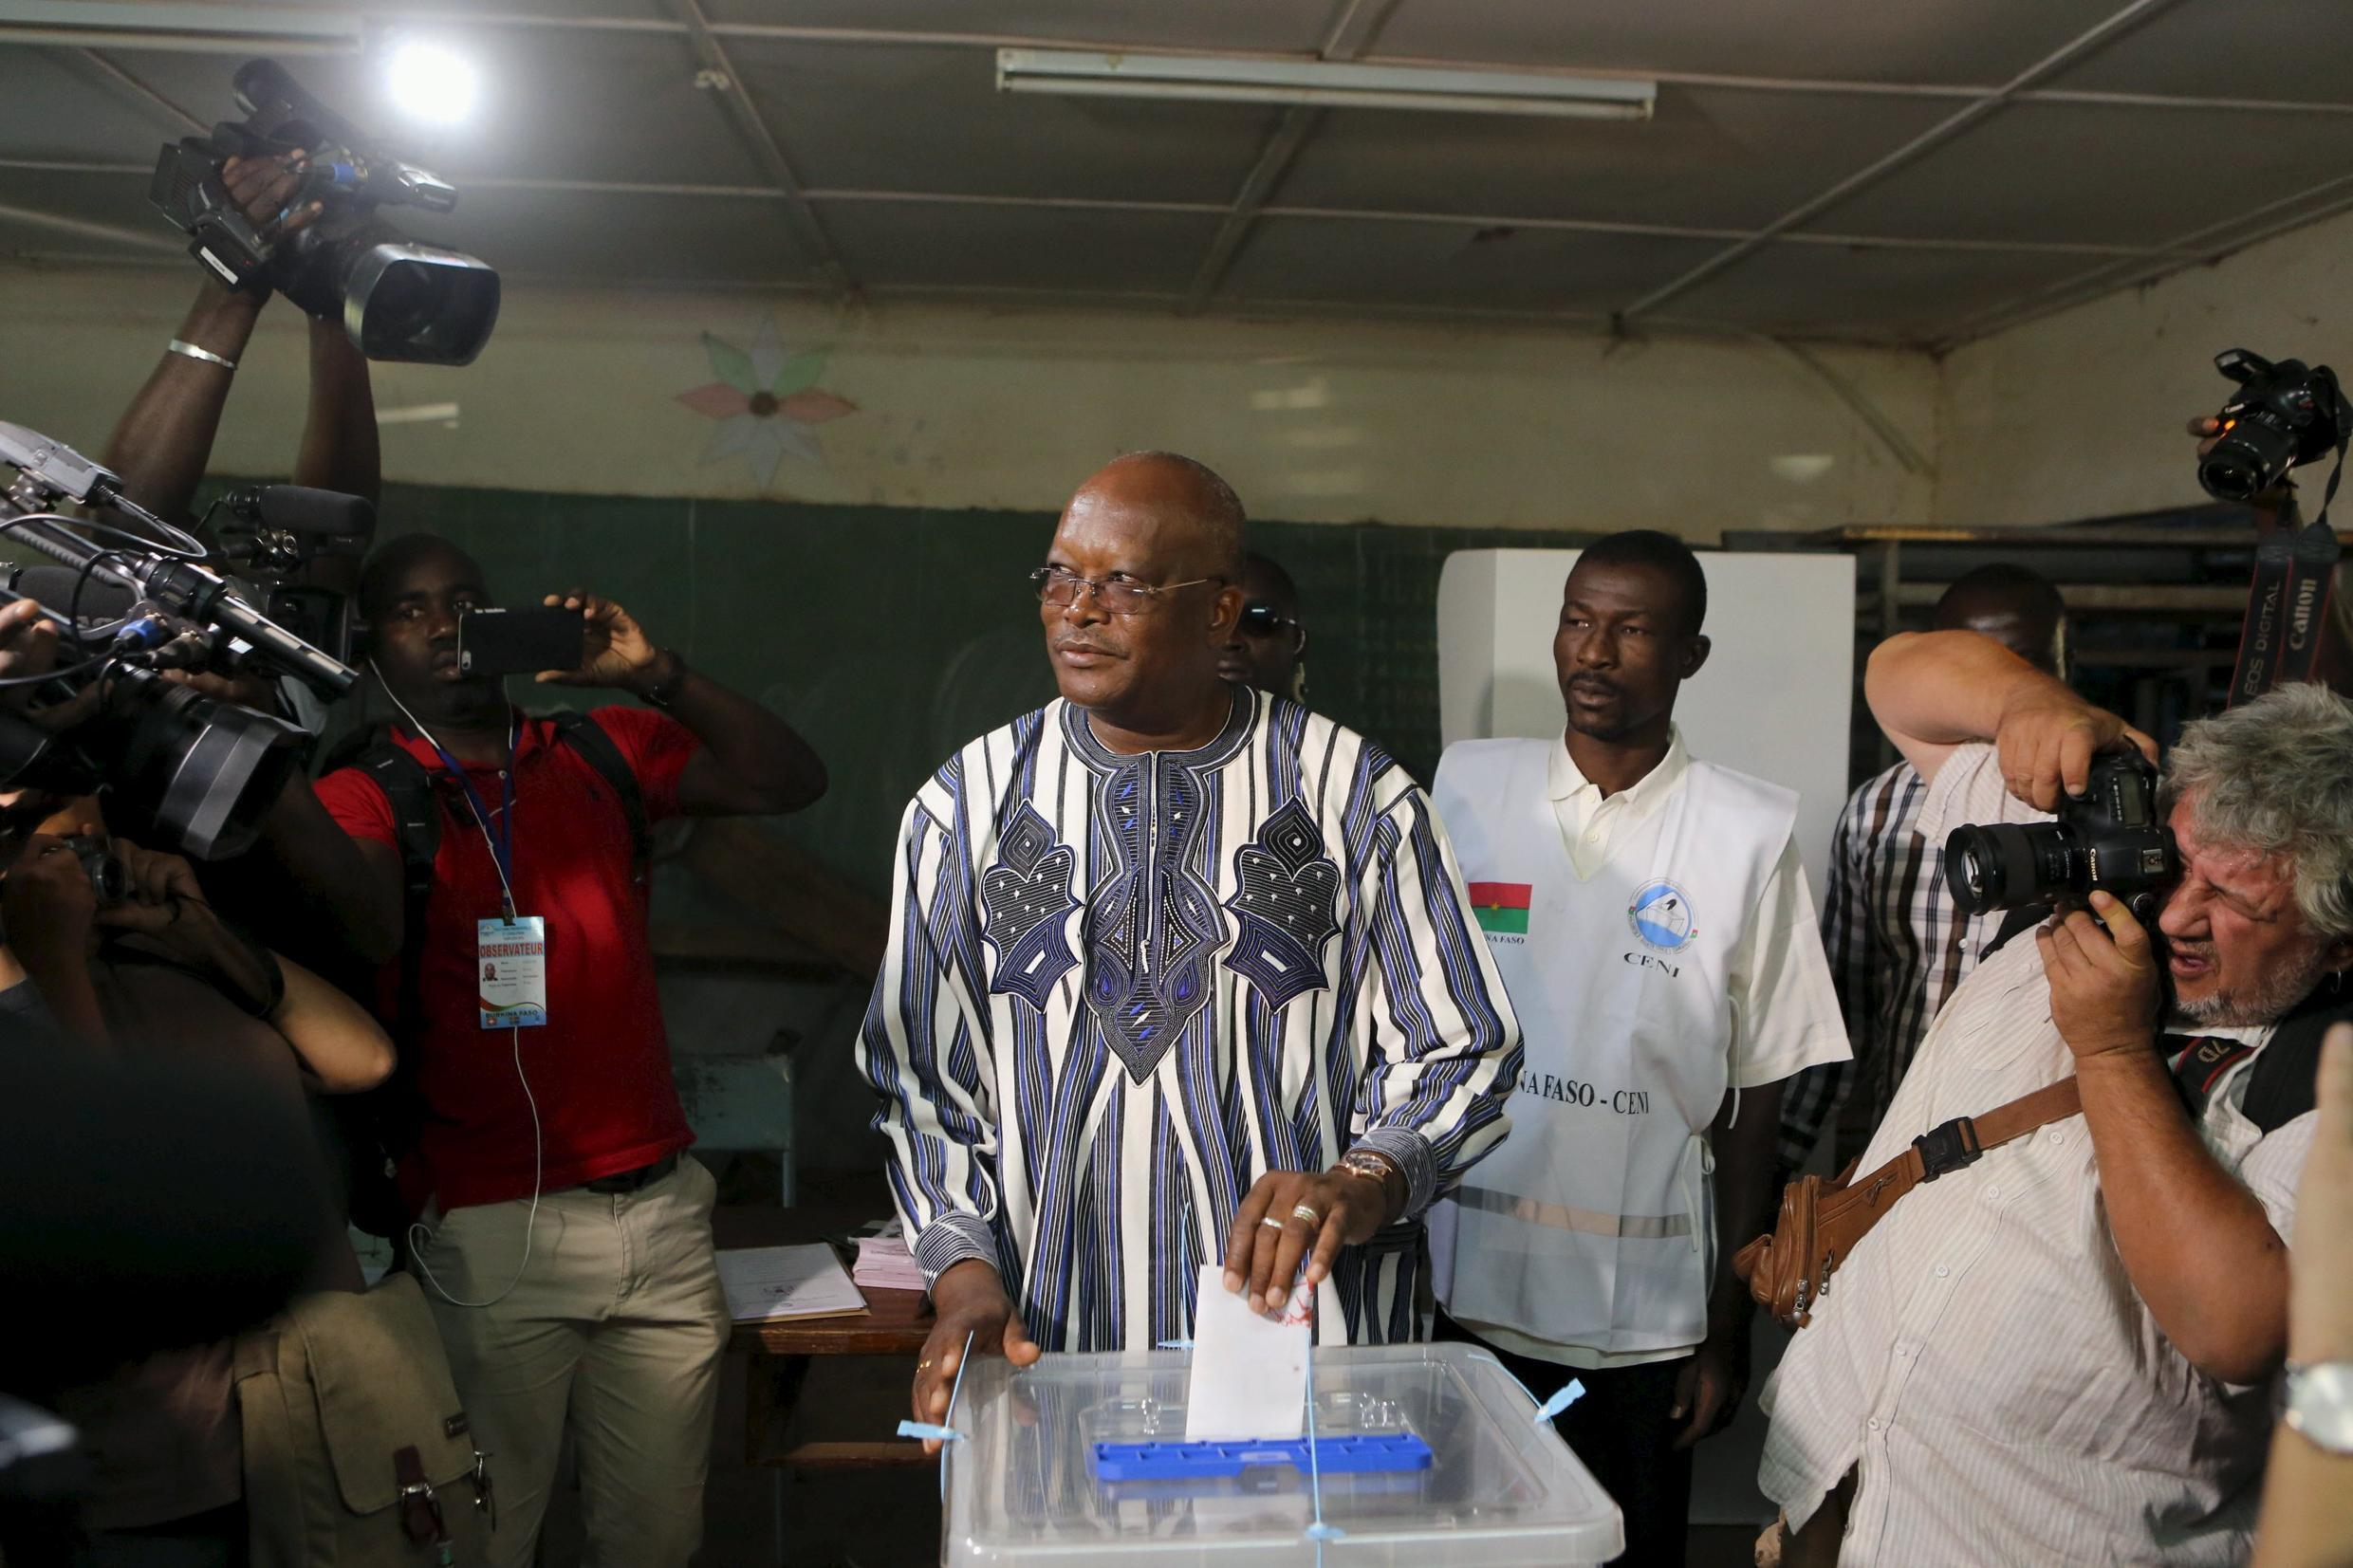 Presidential candidate Roch Marc Kabore (c) votes during the presidential and legislative election at a polling station in Ouagadougou, Burkina Faso, November 29, 2015.